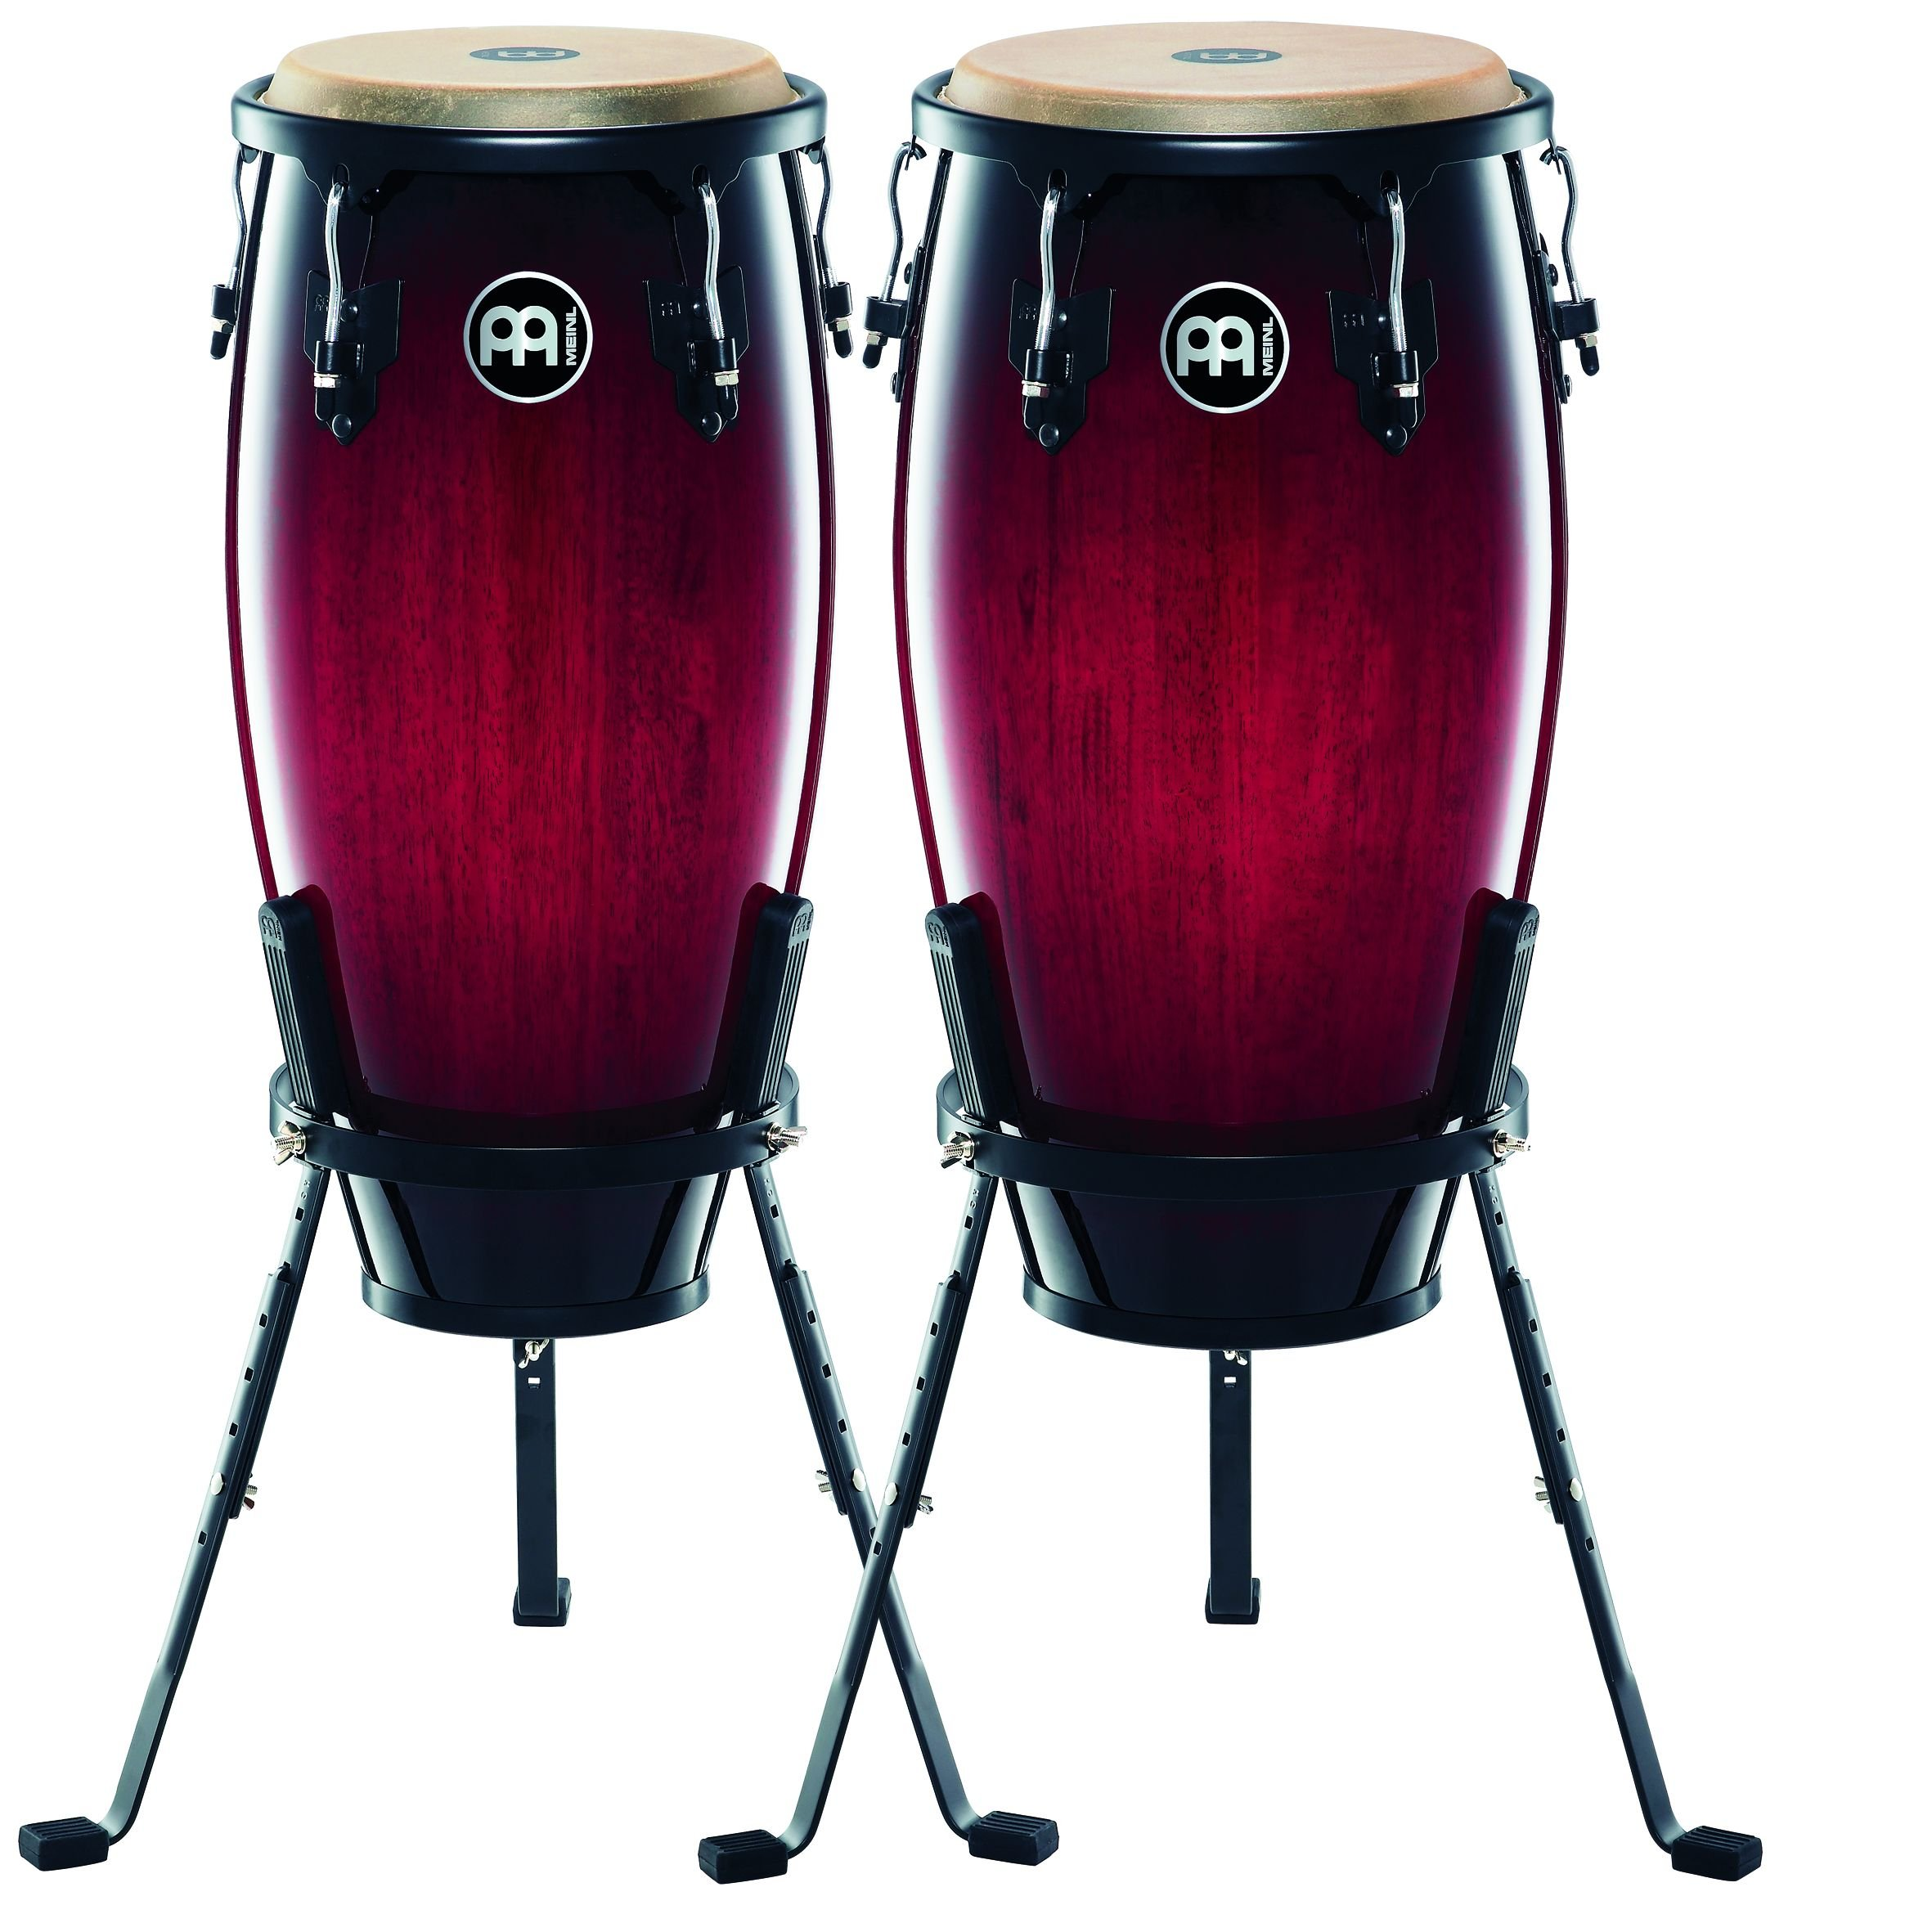 Meinl Percussion HC512WRB Headliner Series 11-Inch and 12-Inch Conga Set With Basket Stands, Wine Red Burst by Meinl Percussion